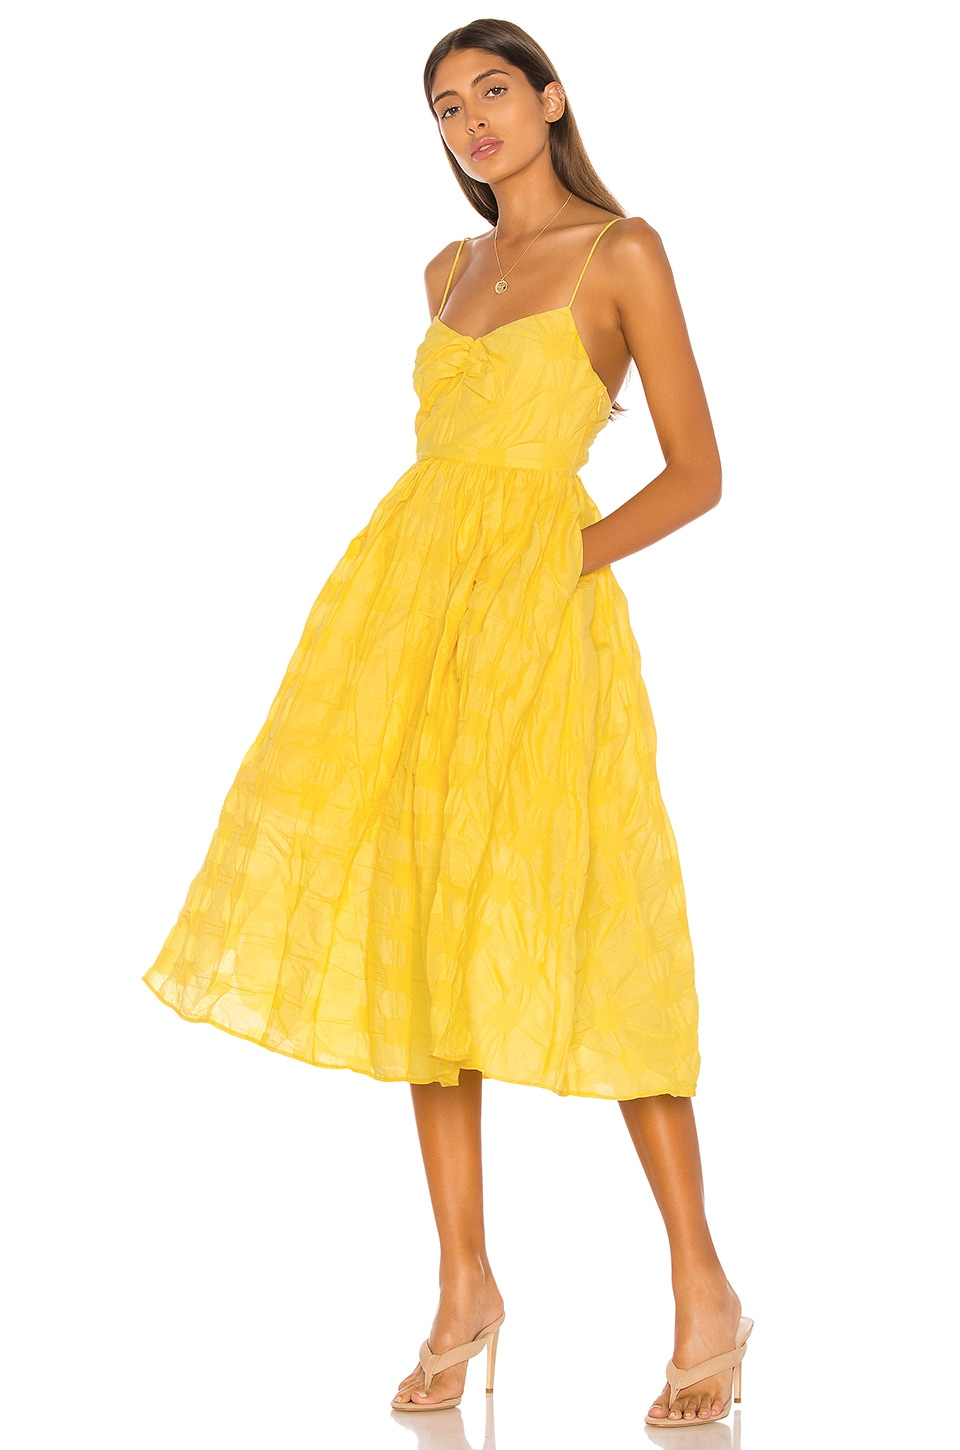 L'Academie The Marie Midi Dress in Lemon Yellow